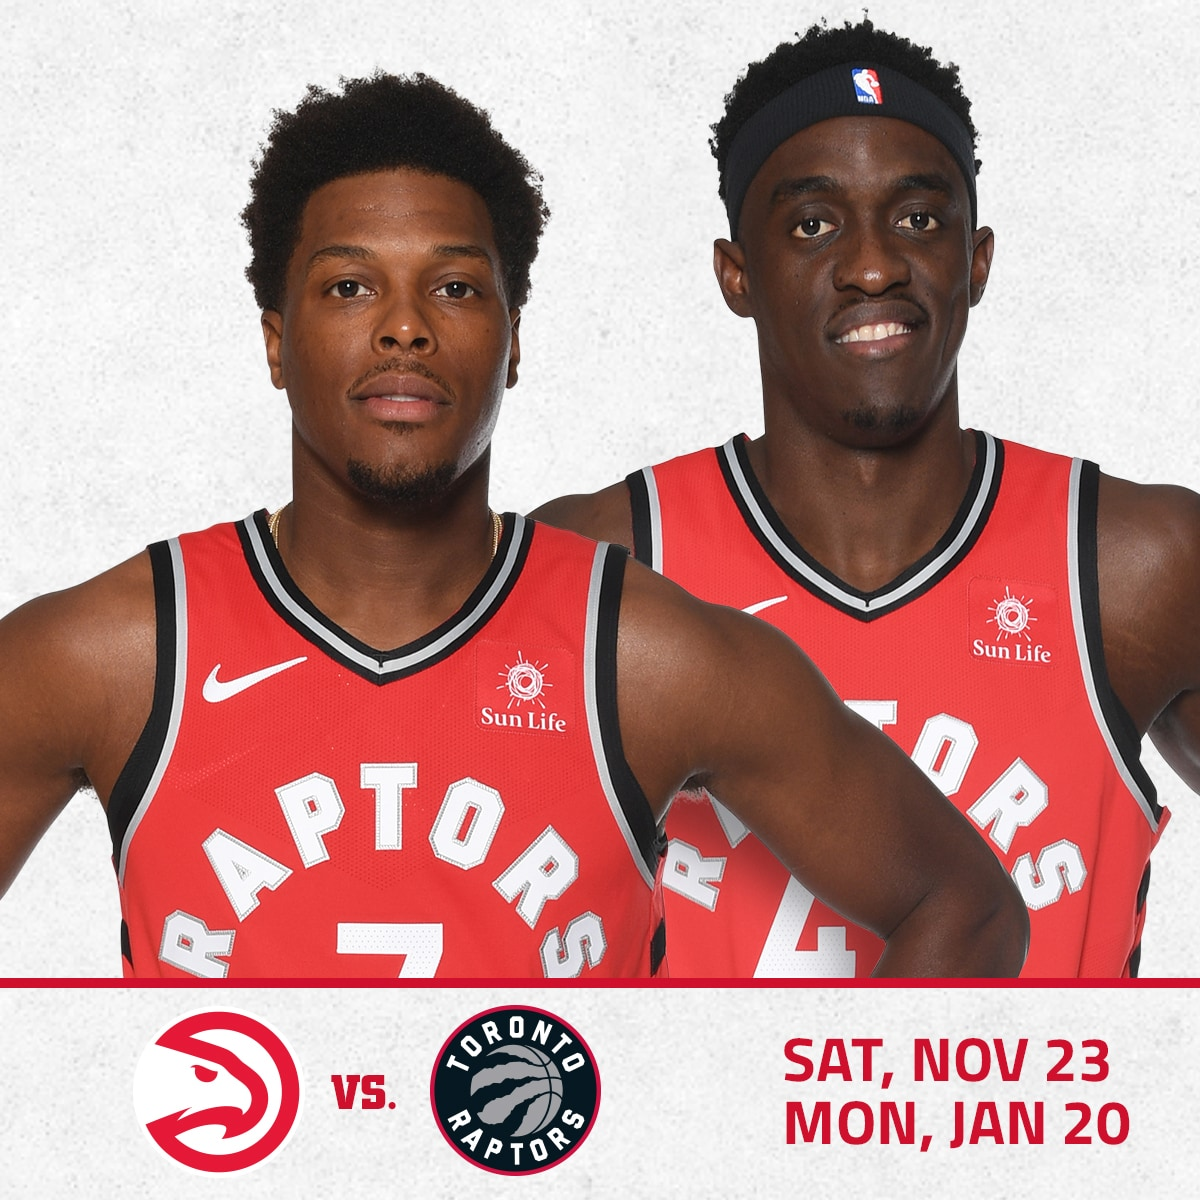 Hawks vs. Raptors